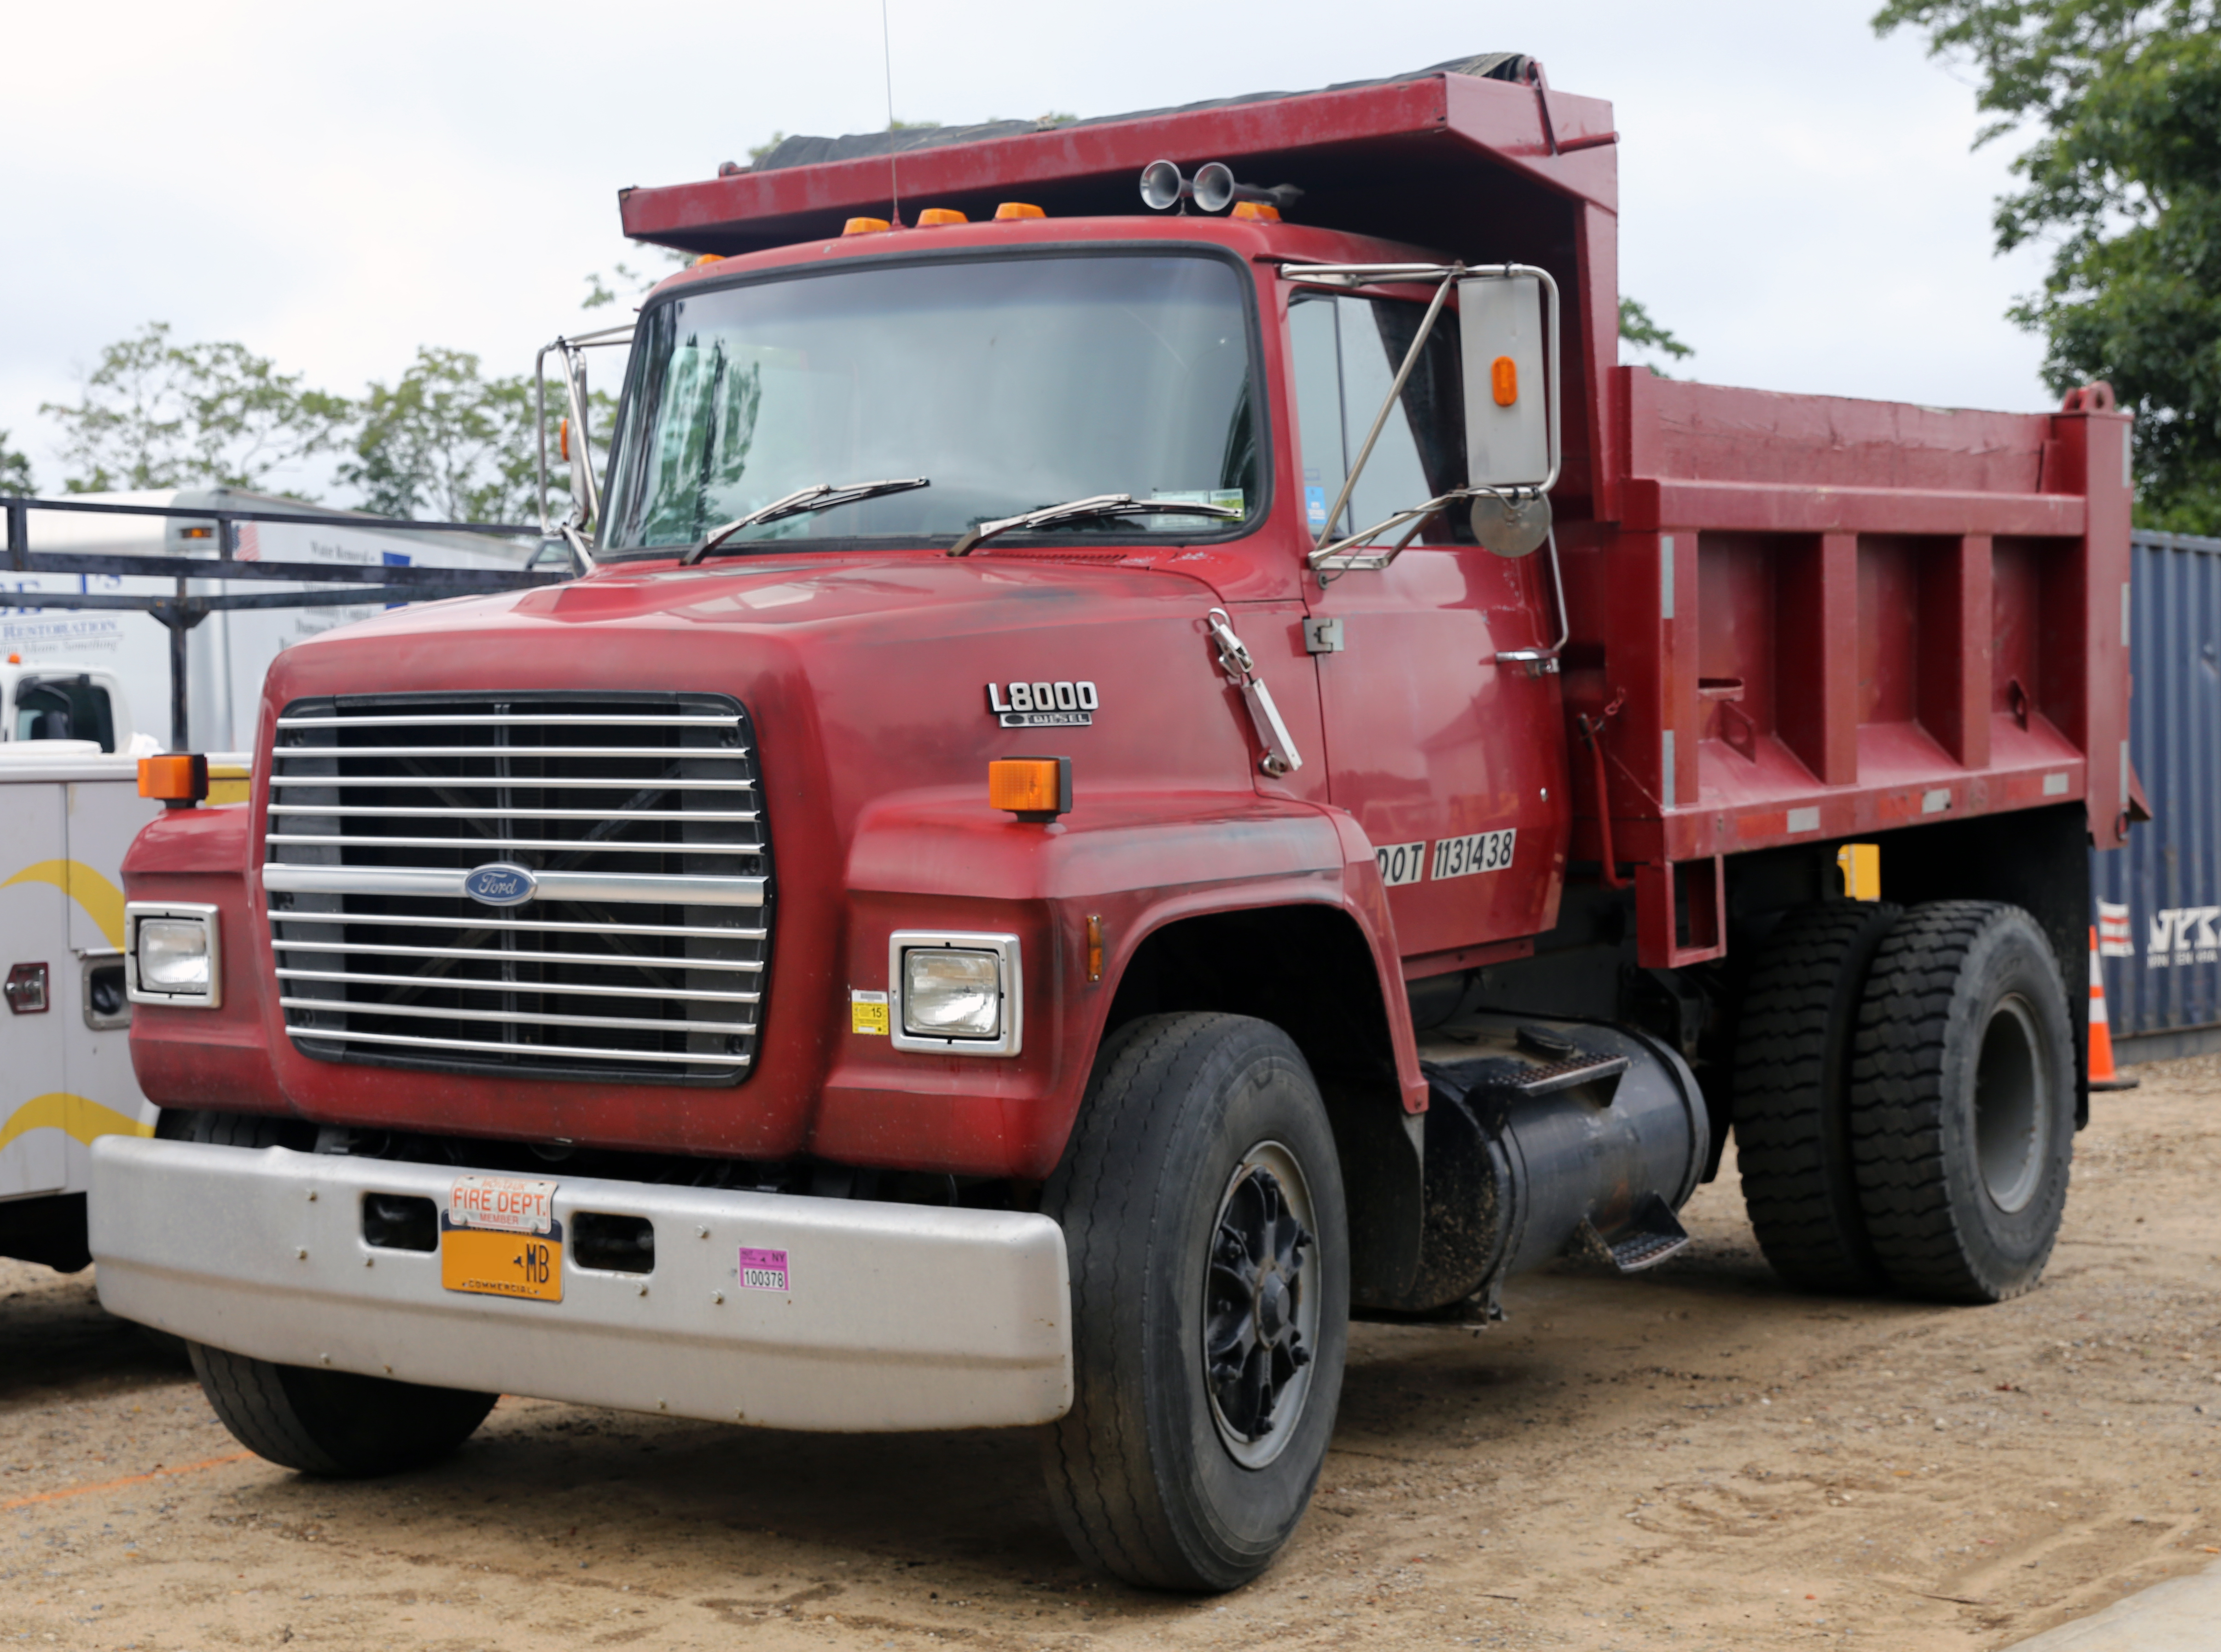 Ford L7000 | 2017, 2018, 2019 Ford Price, Release Date, Reviews